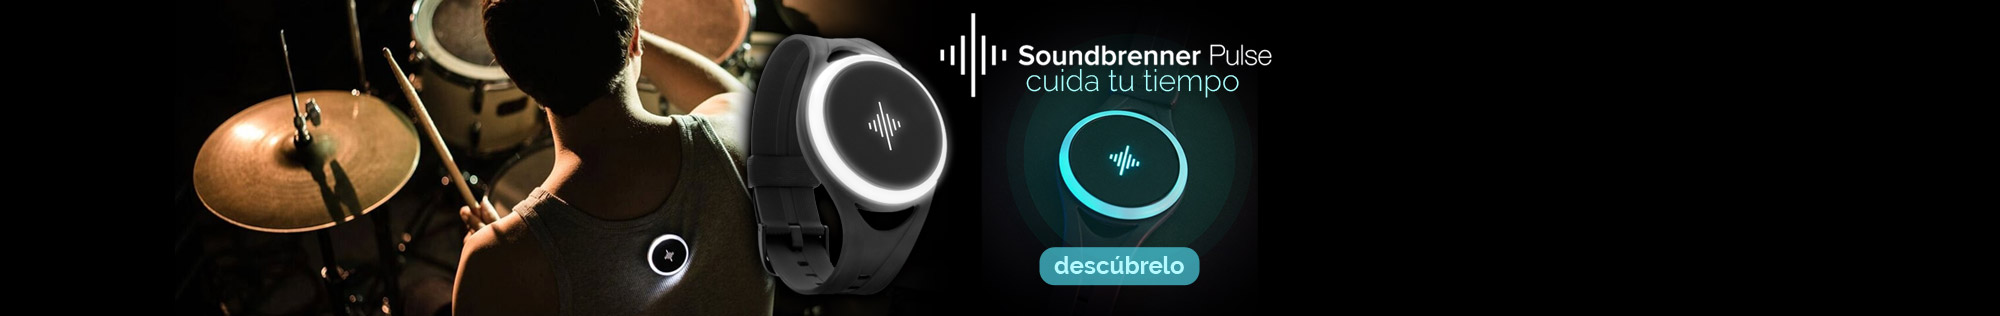 Soundbrenner Pulse Metrónomo